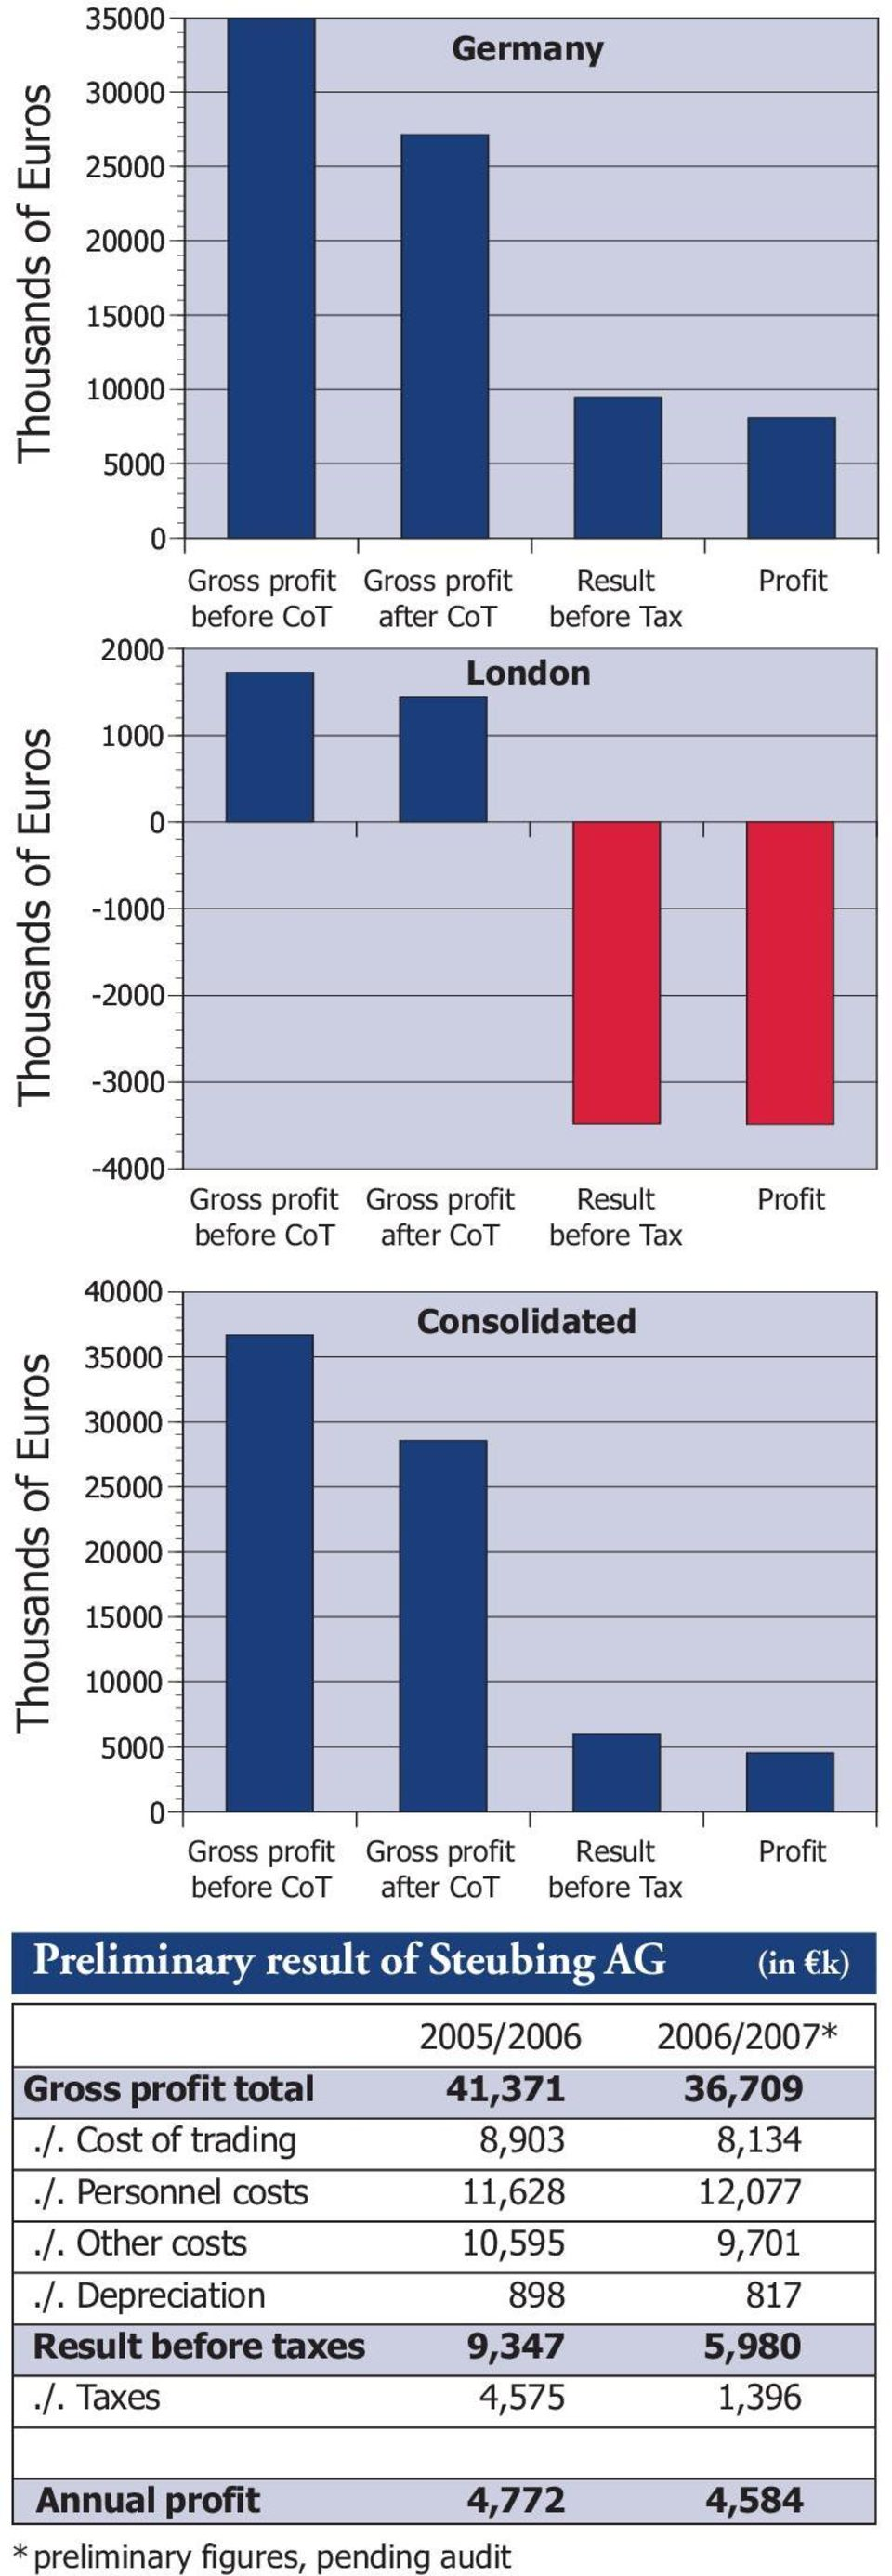 CoT Gross profit after CoT Result before Tax Preliminary result of Steubing AG Profit (in k)h 2005/2006 2006/2007* Gross profit total 41,371 36,709./. Cost of trading 8,903 8,134./. Personnel costs 11,628 12,077.